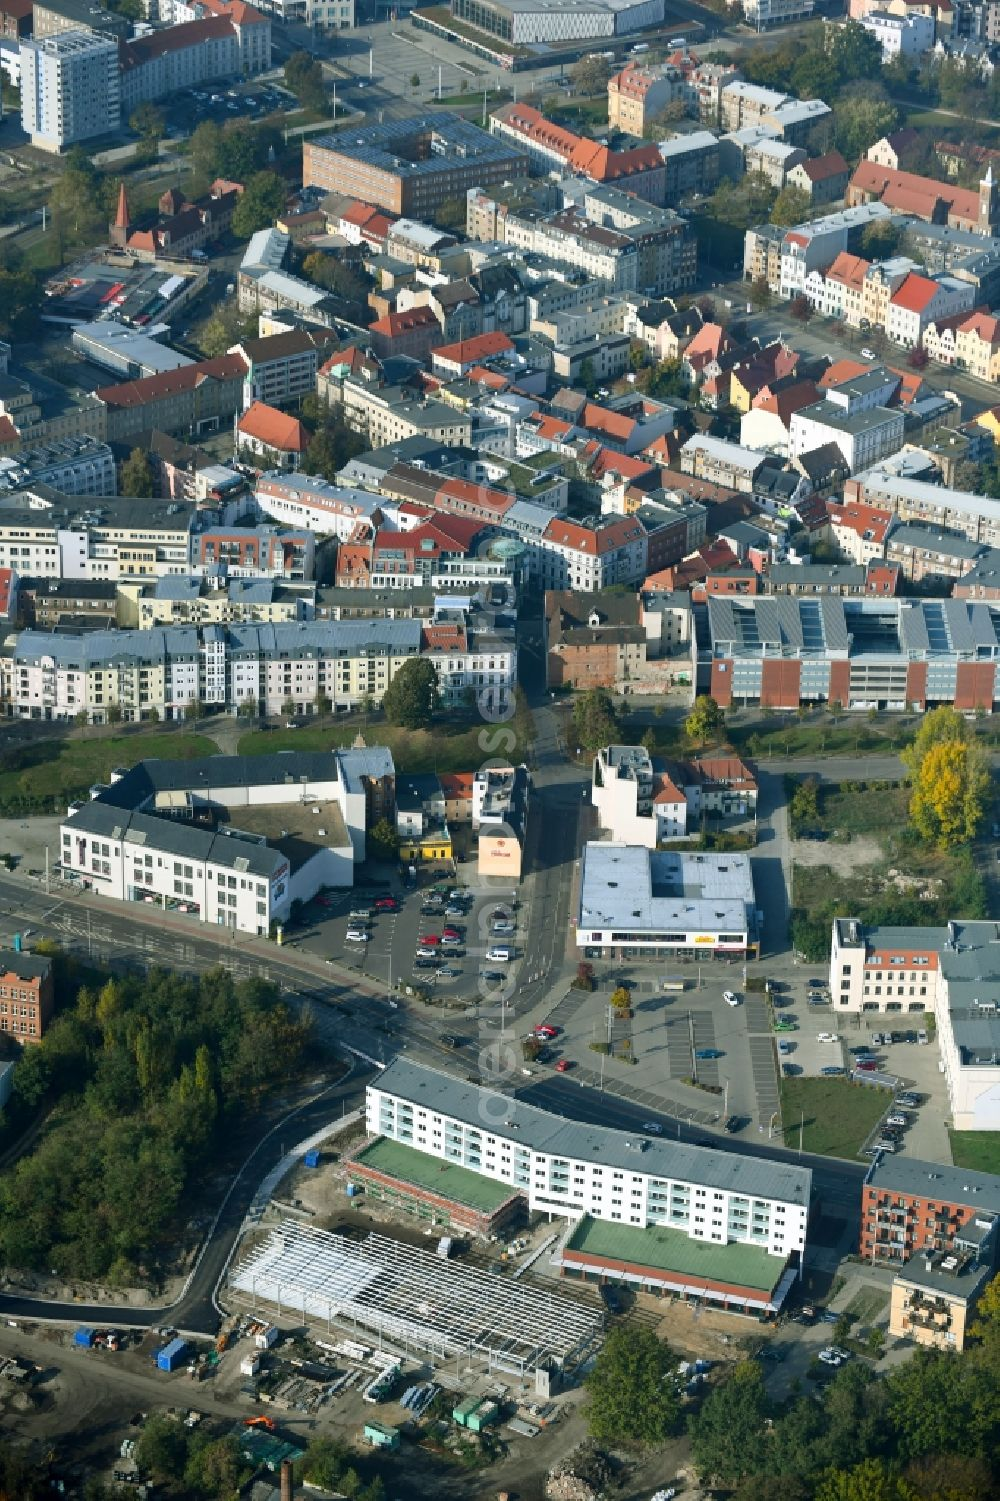 Cottbus from above - Construction site to build a new multi-family residential complex and a car park of eG Wohnen 1902 on Franz-Mehring-Strasse in Cottbus in the state Brandenburg, Germany